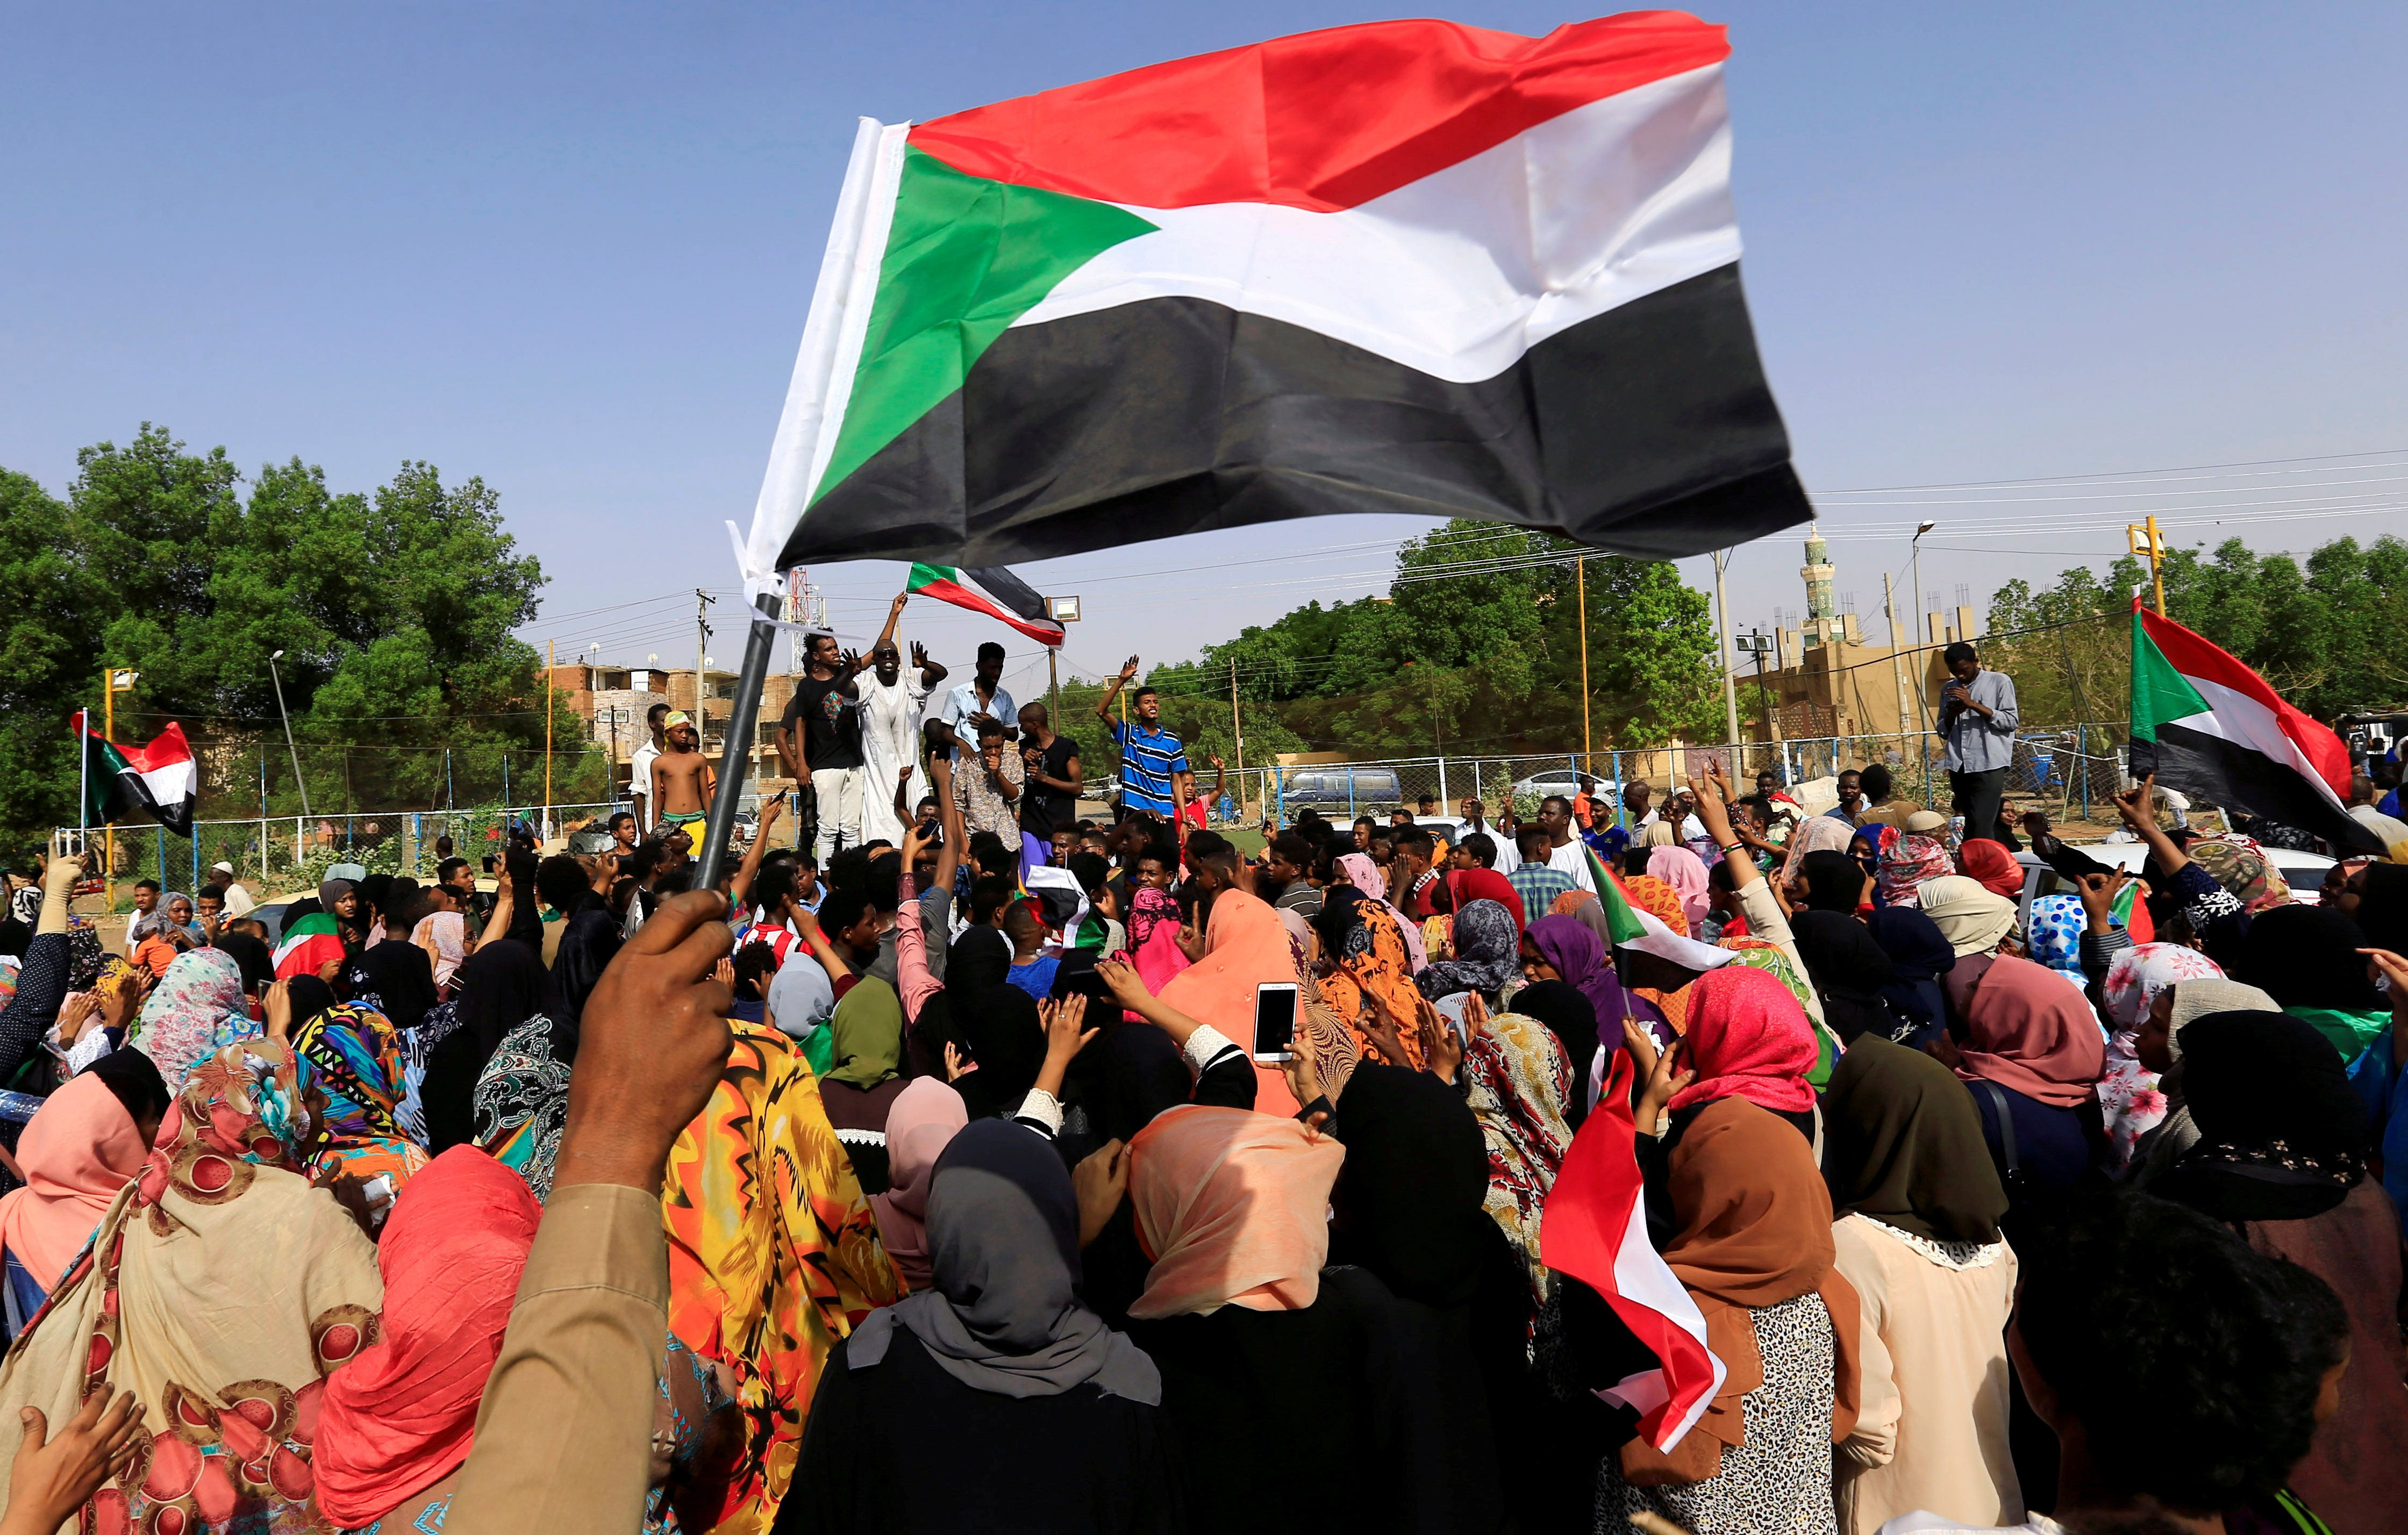 What We're Watching: Sudan softens laws, Duda wins by a whisker in Poland, protests erupt in Russia's Far East